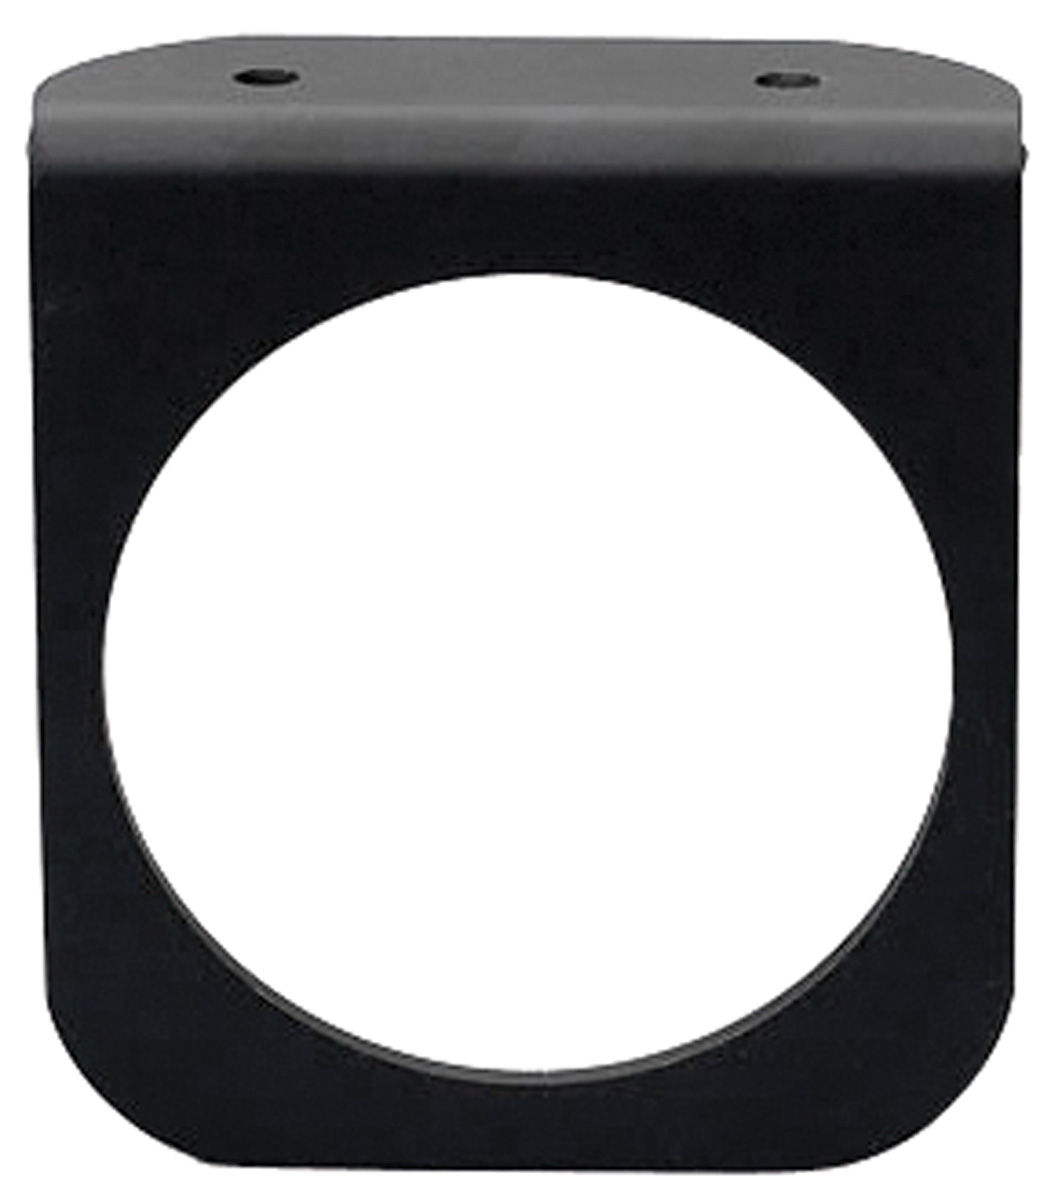 "Photo of Gauge Accessory - Black Gauge Panel, 2-5/8"" one hole"